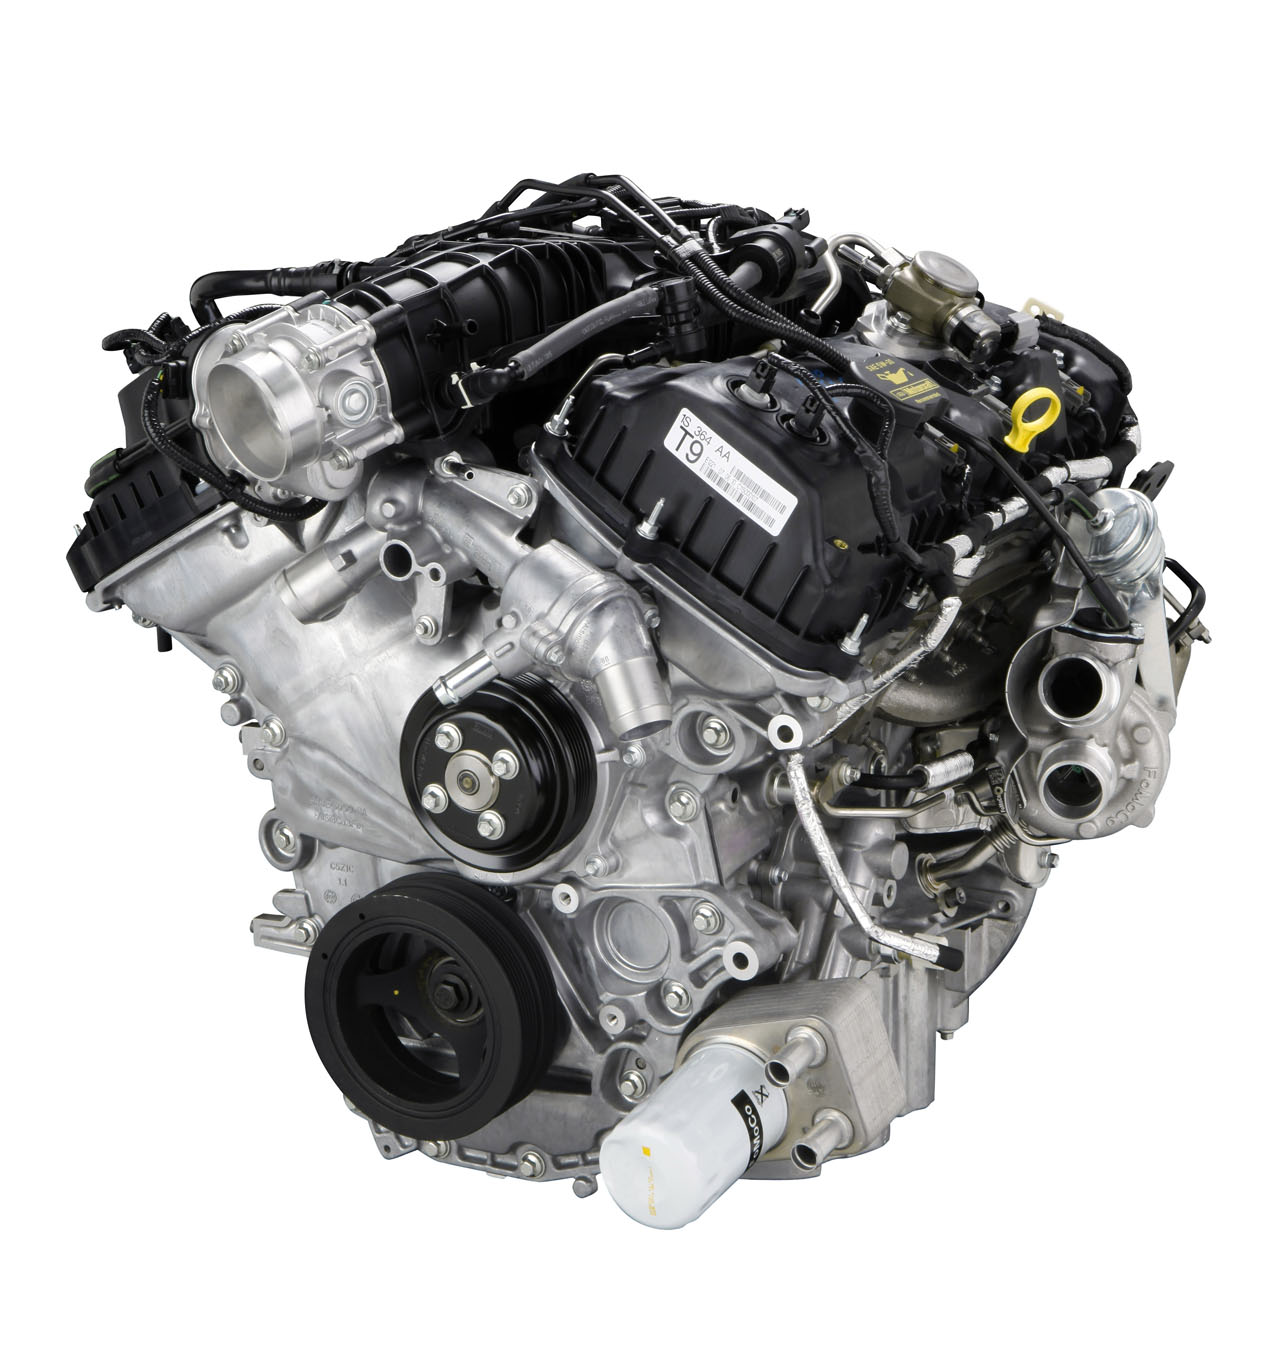 hight resolution of ford owners file lawsuit claim ecoboost engine loses power during acceleration